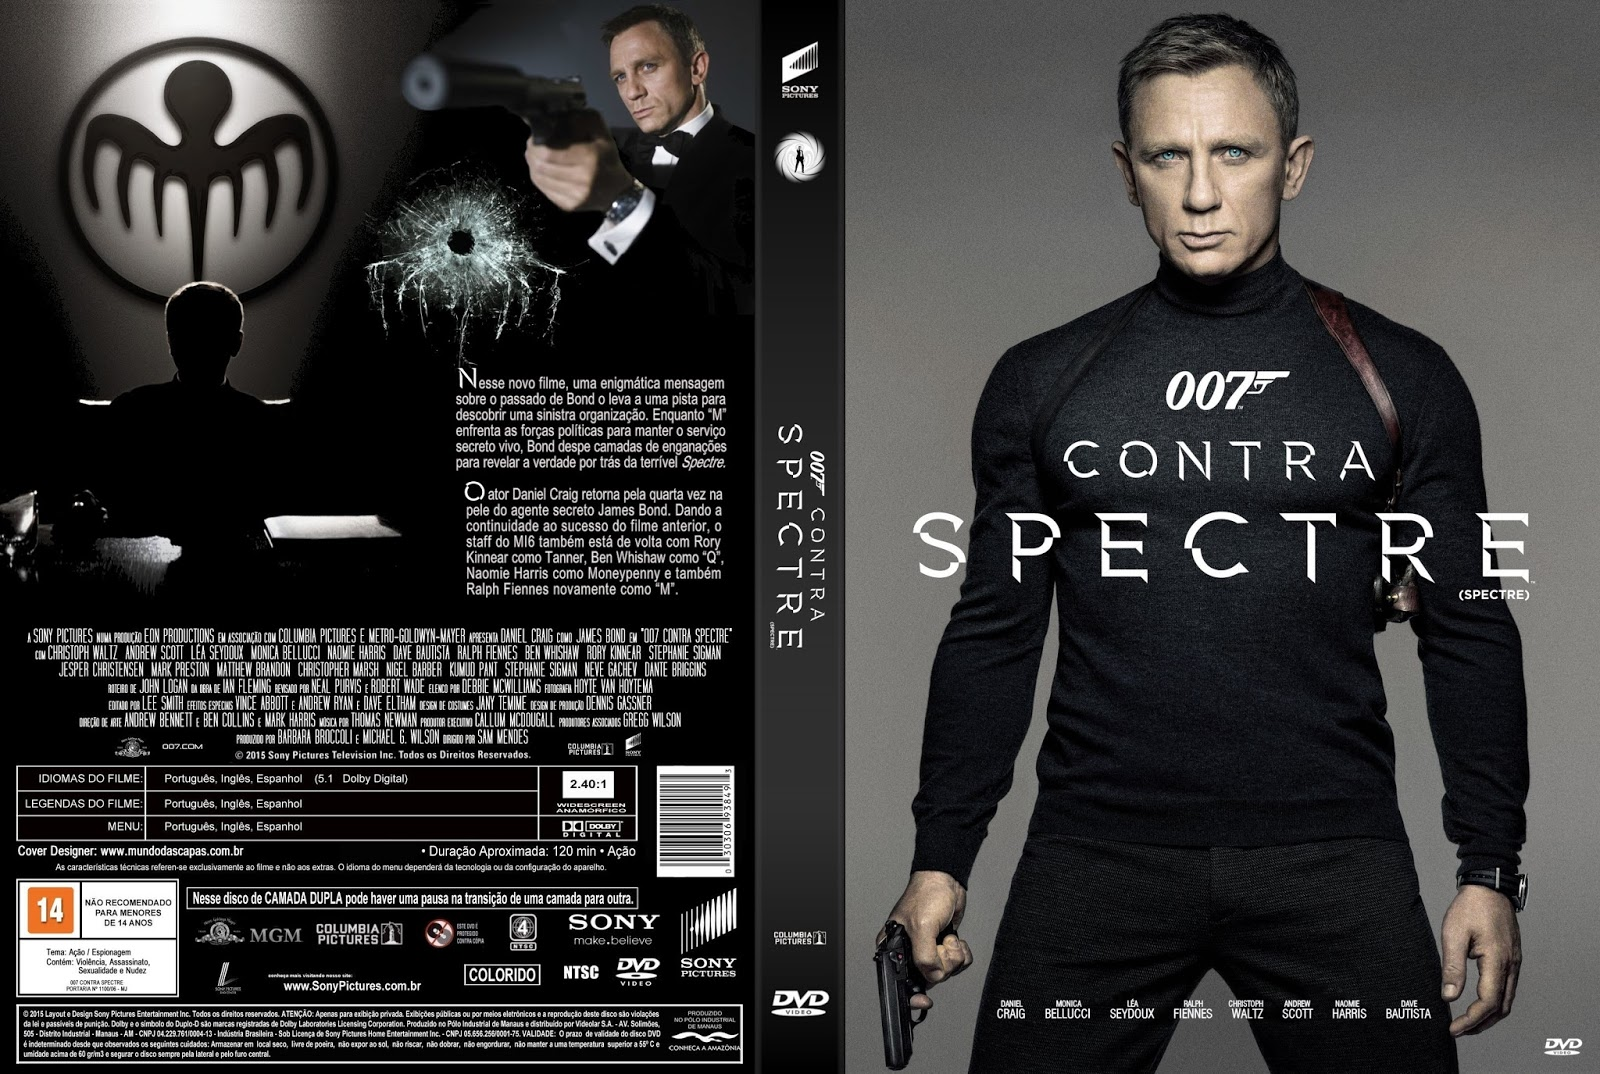 Download 007 Contra Spectre DVD-R 007 2BContra 2BSpectre 2BDVD R 2BXANDAODOWNLOAD